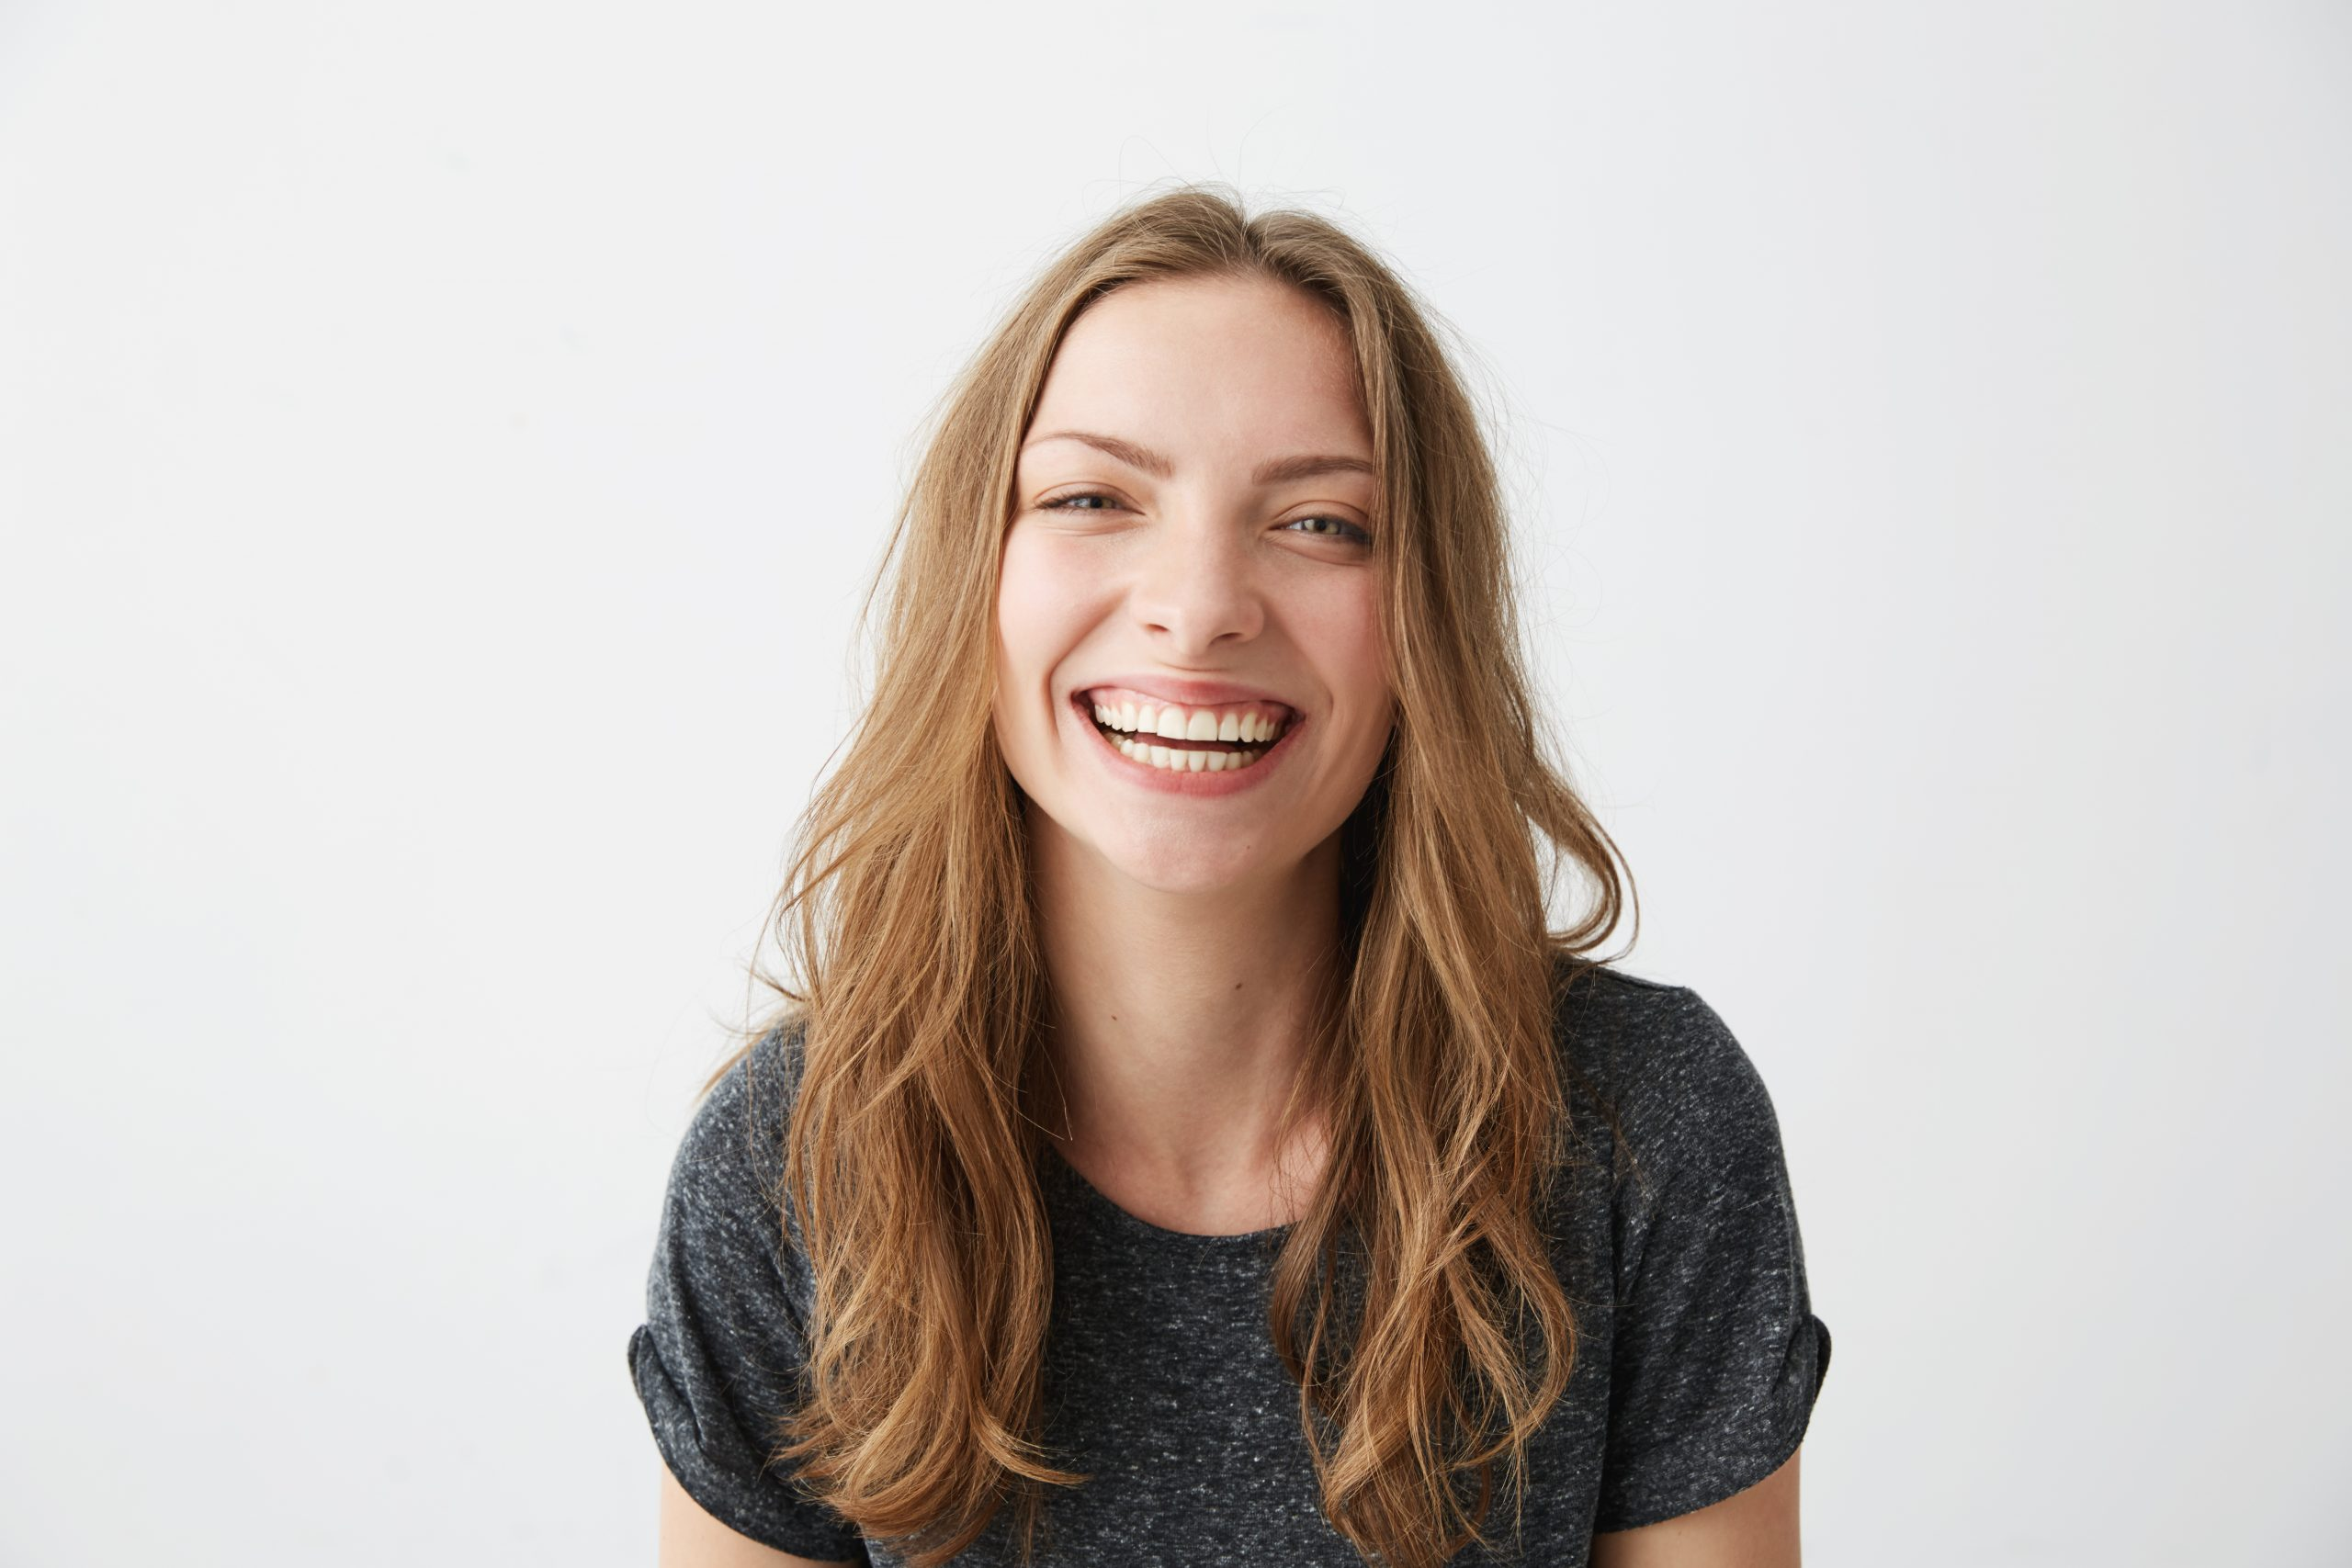 Young cheerful happy girl smiling laughing looking at camera over white background. Copy space.